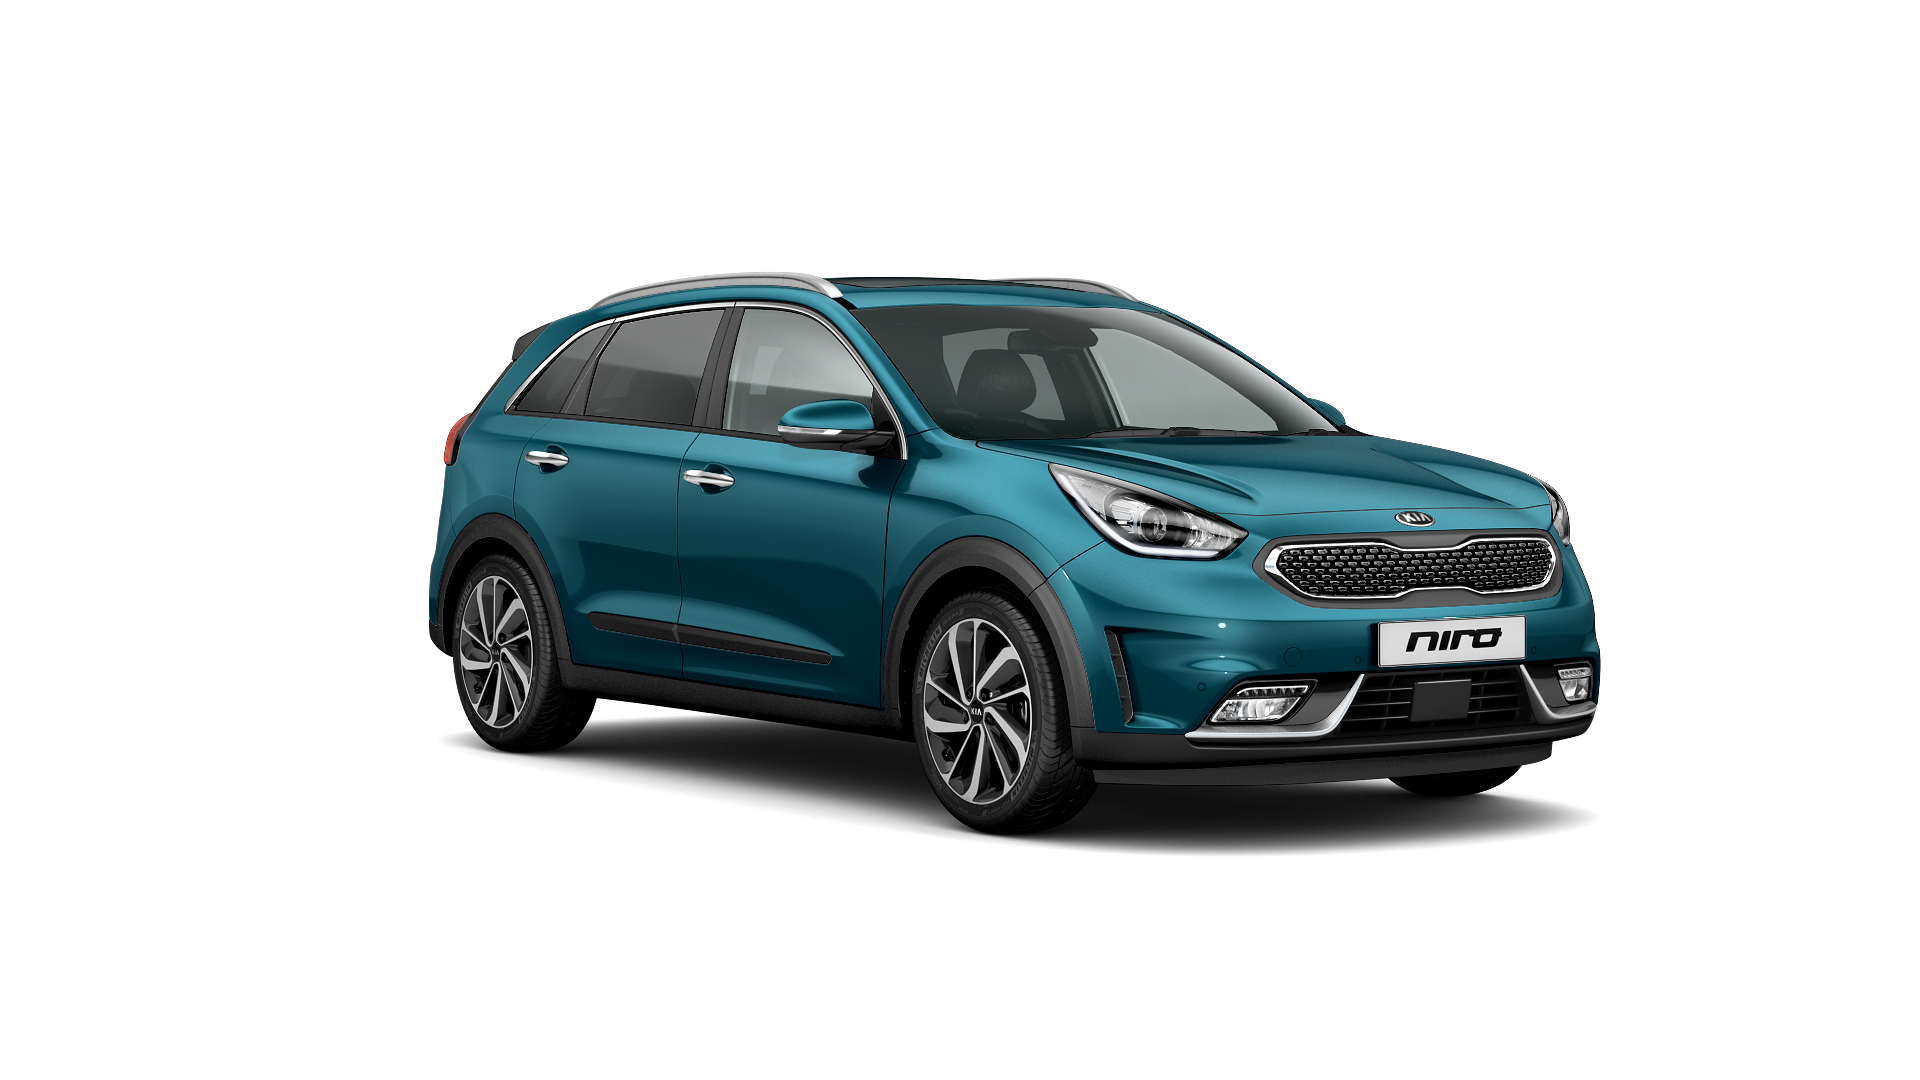 New Kia Niro cars for sale at Downeys car dealer based in